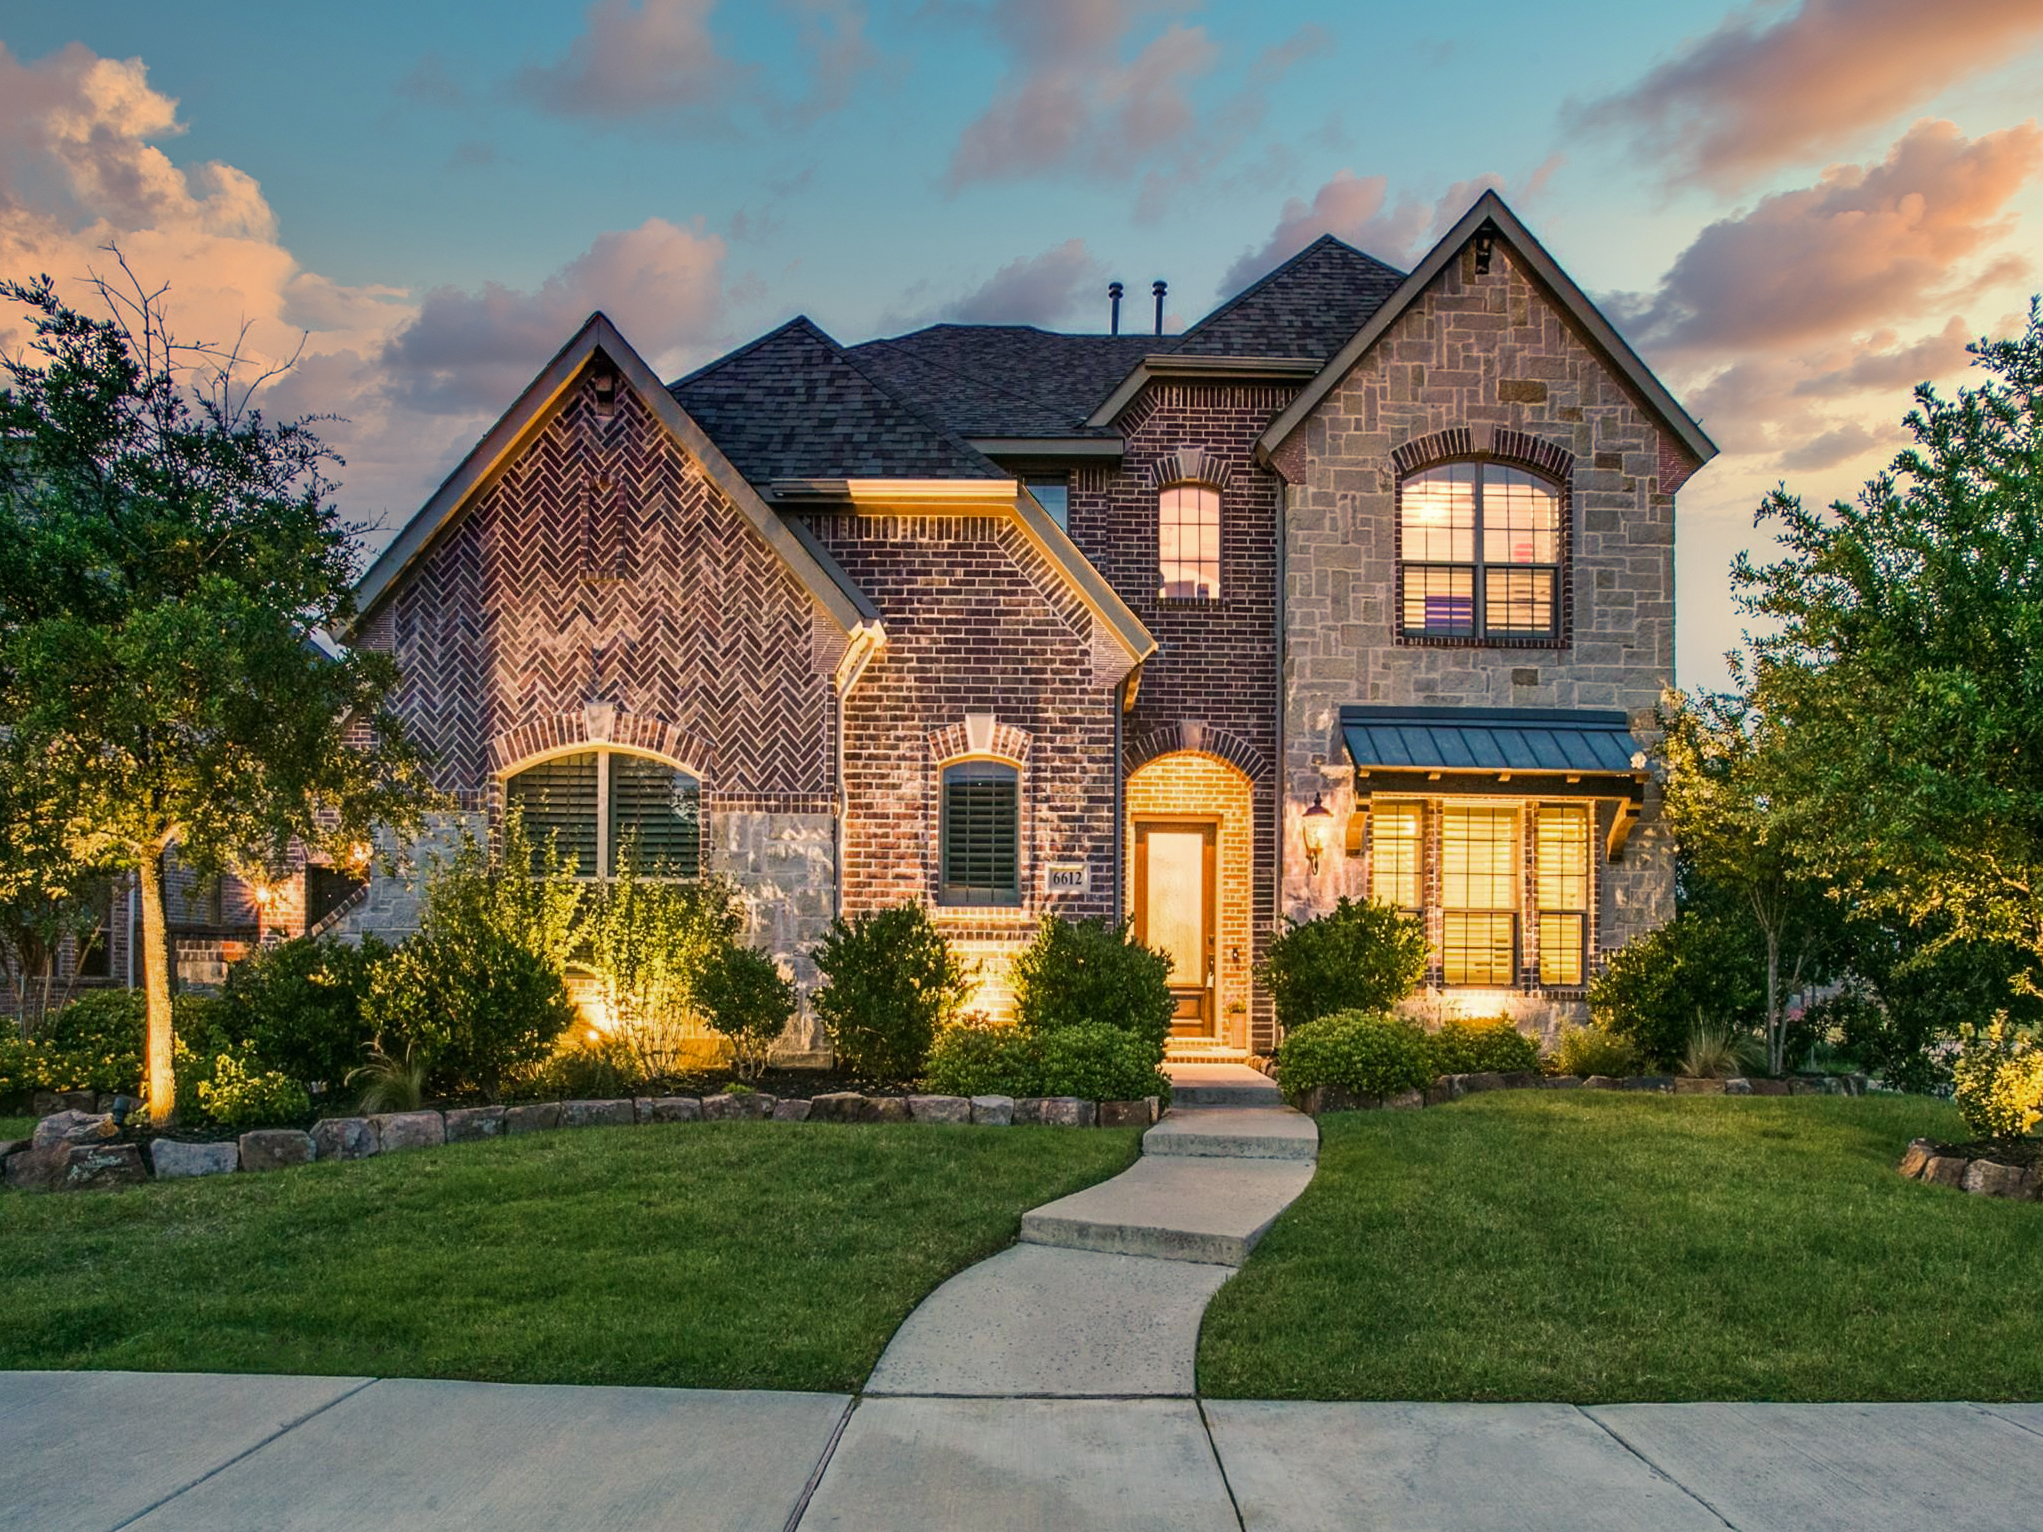 Image taken at dusk of the front of a 2-story home in Frisco.